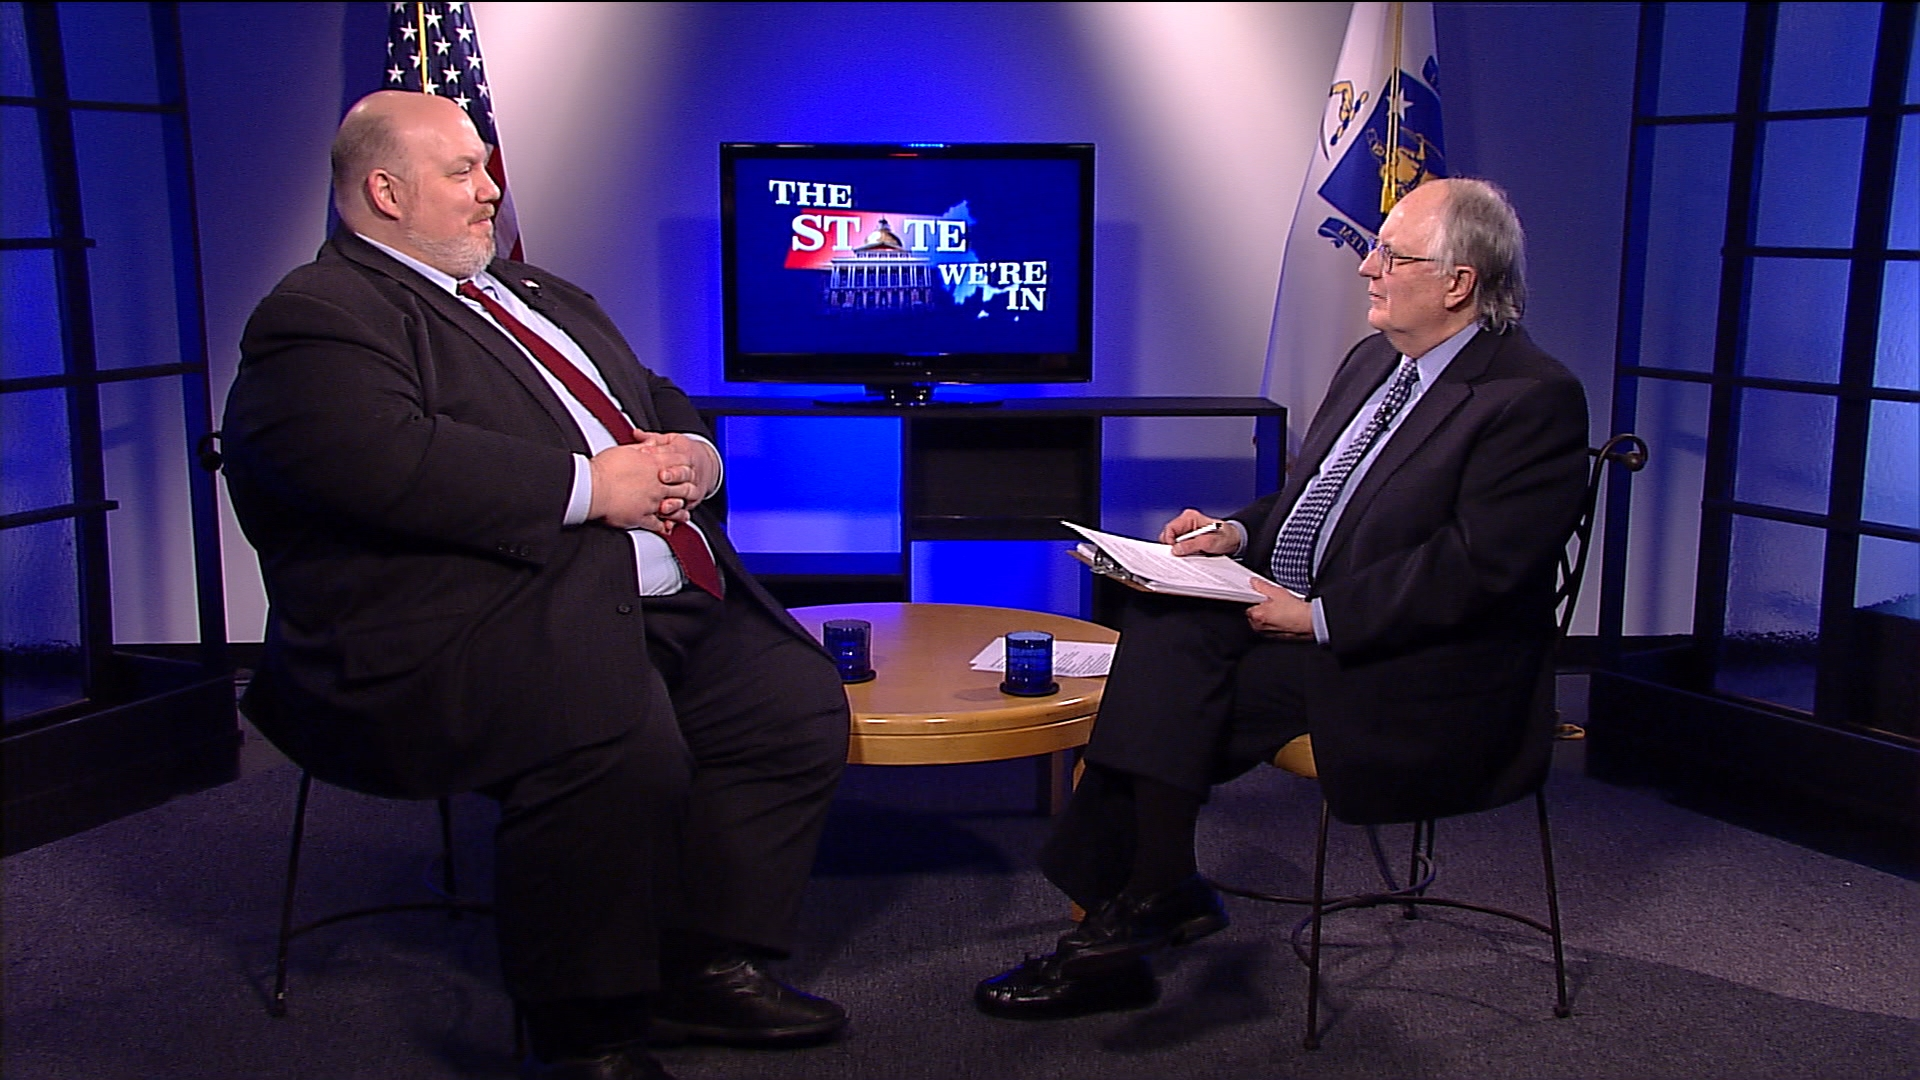 State Sen. Don Humason discusses his vote against the legislative pay increase and the upcoming 2018 State Budget debate in the Massachusetts State Senate.